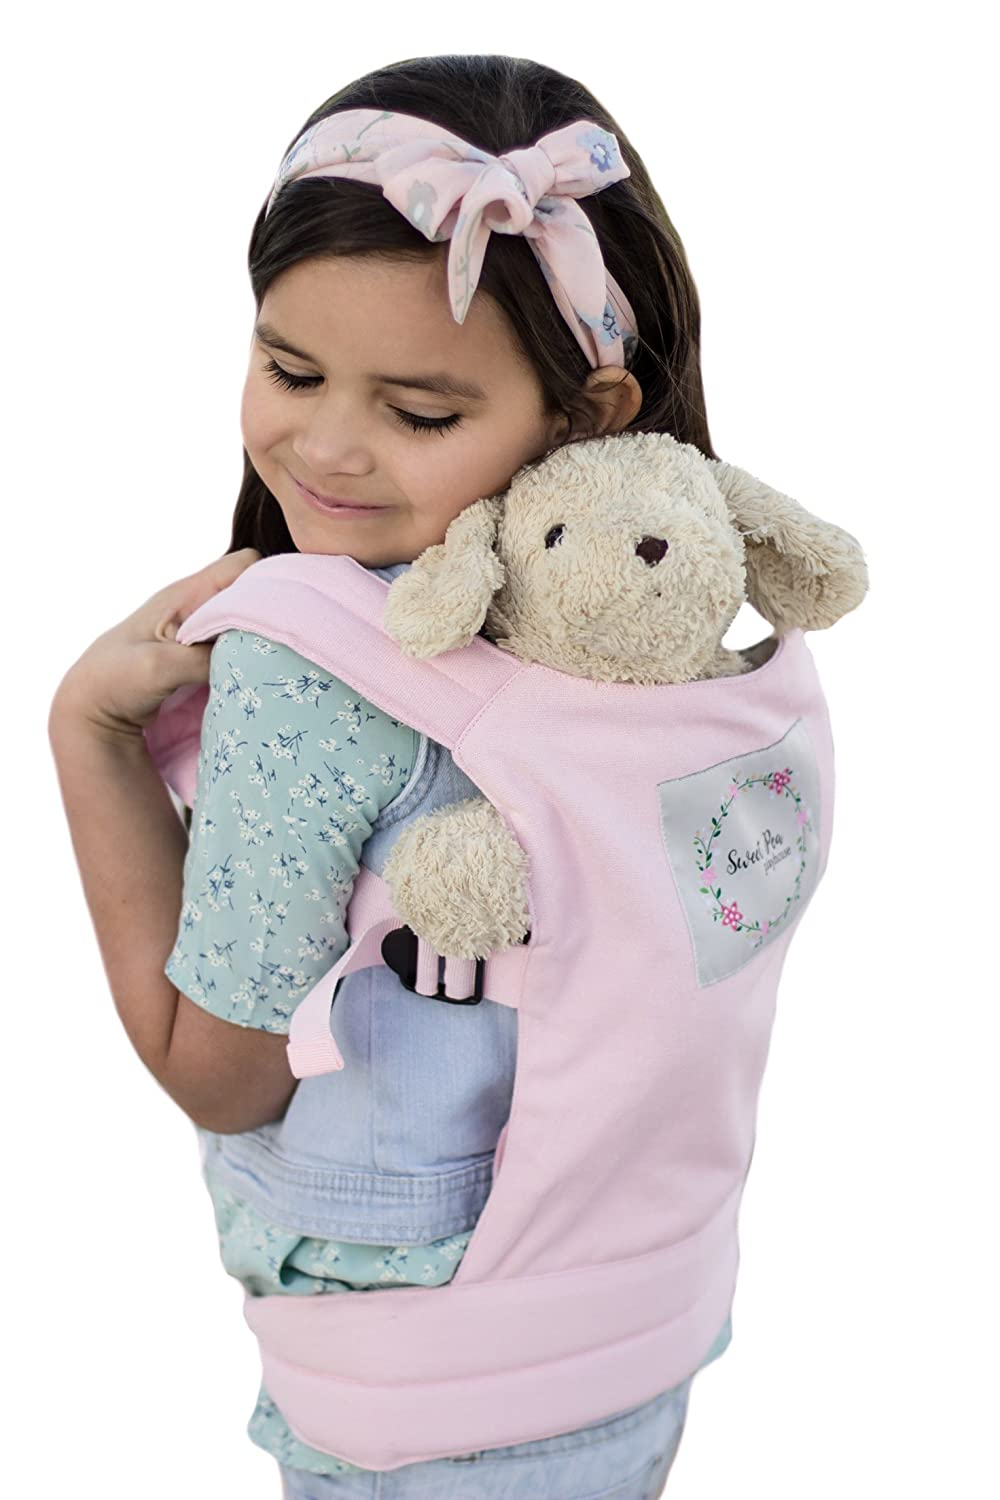 Baby Doll Carrier, Backpack Style, Stuffed Animal Snuggle Up, Adjustable Straps, Wearable Front and Back, For Kids ages 2+, Pink, by Sweet Pea Playhouse